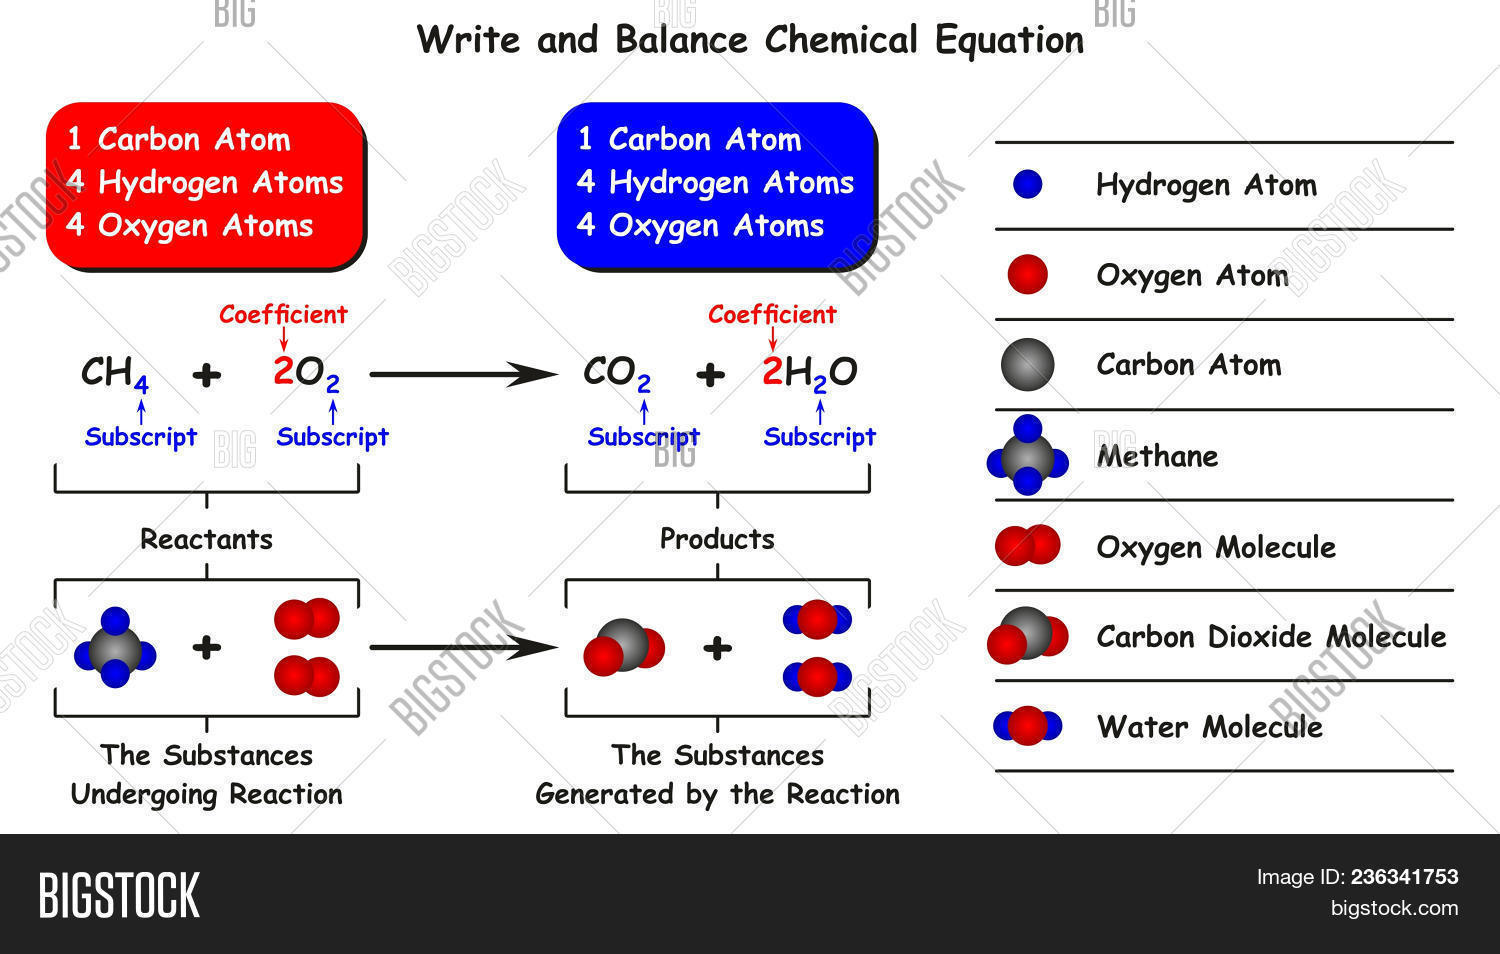 Write Balance Chemical Image Photo Free Trial Bigstock Oxygen Atom Model Atomic Diagram And Equation Infographic With Example Of Reaction Methane As